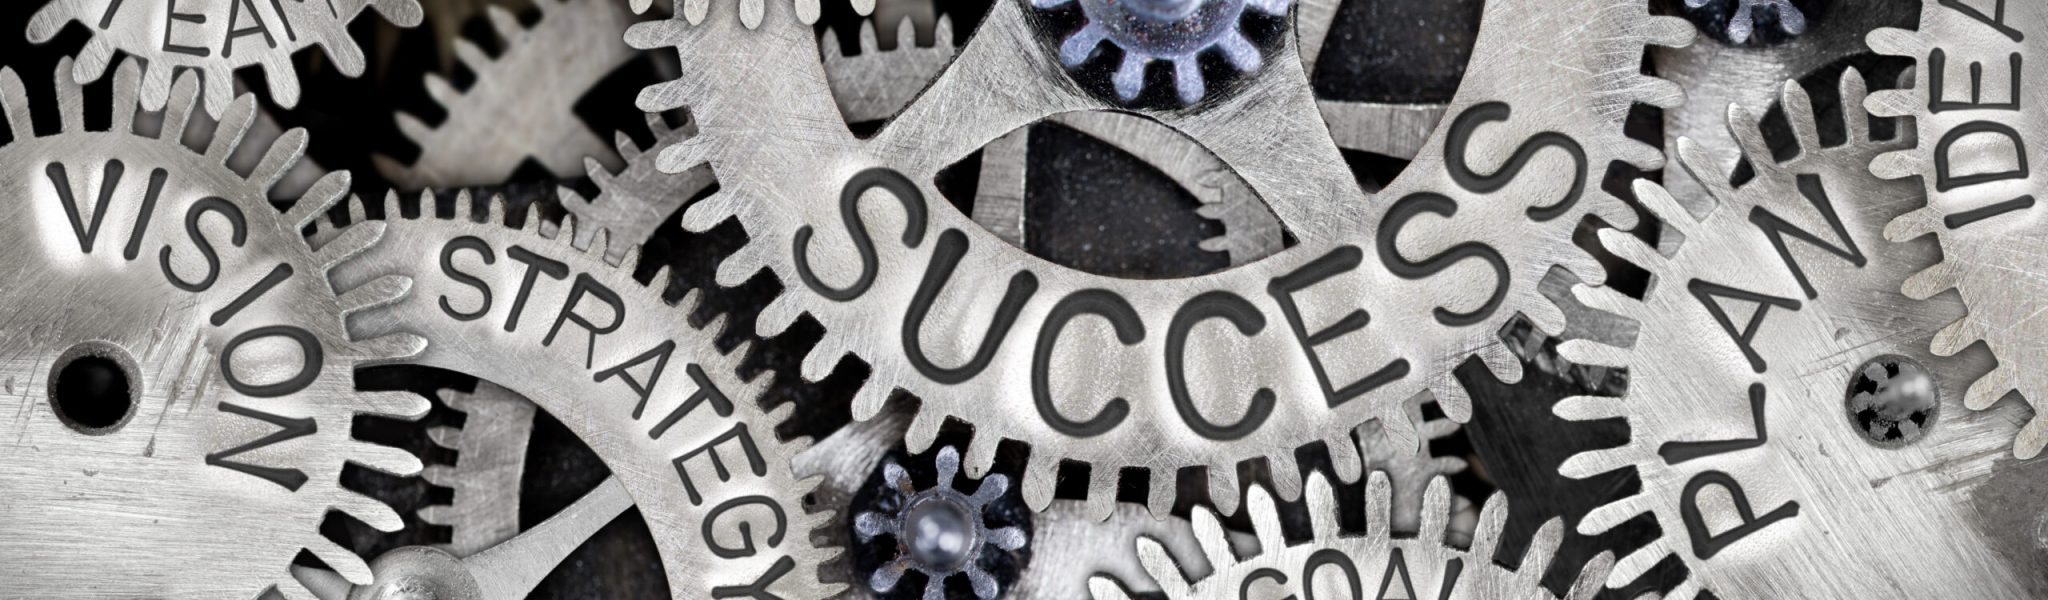 Macro photo of tooth wheel mechanism with SUCCESS concept letters